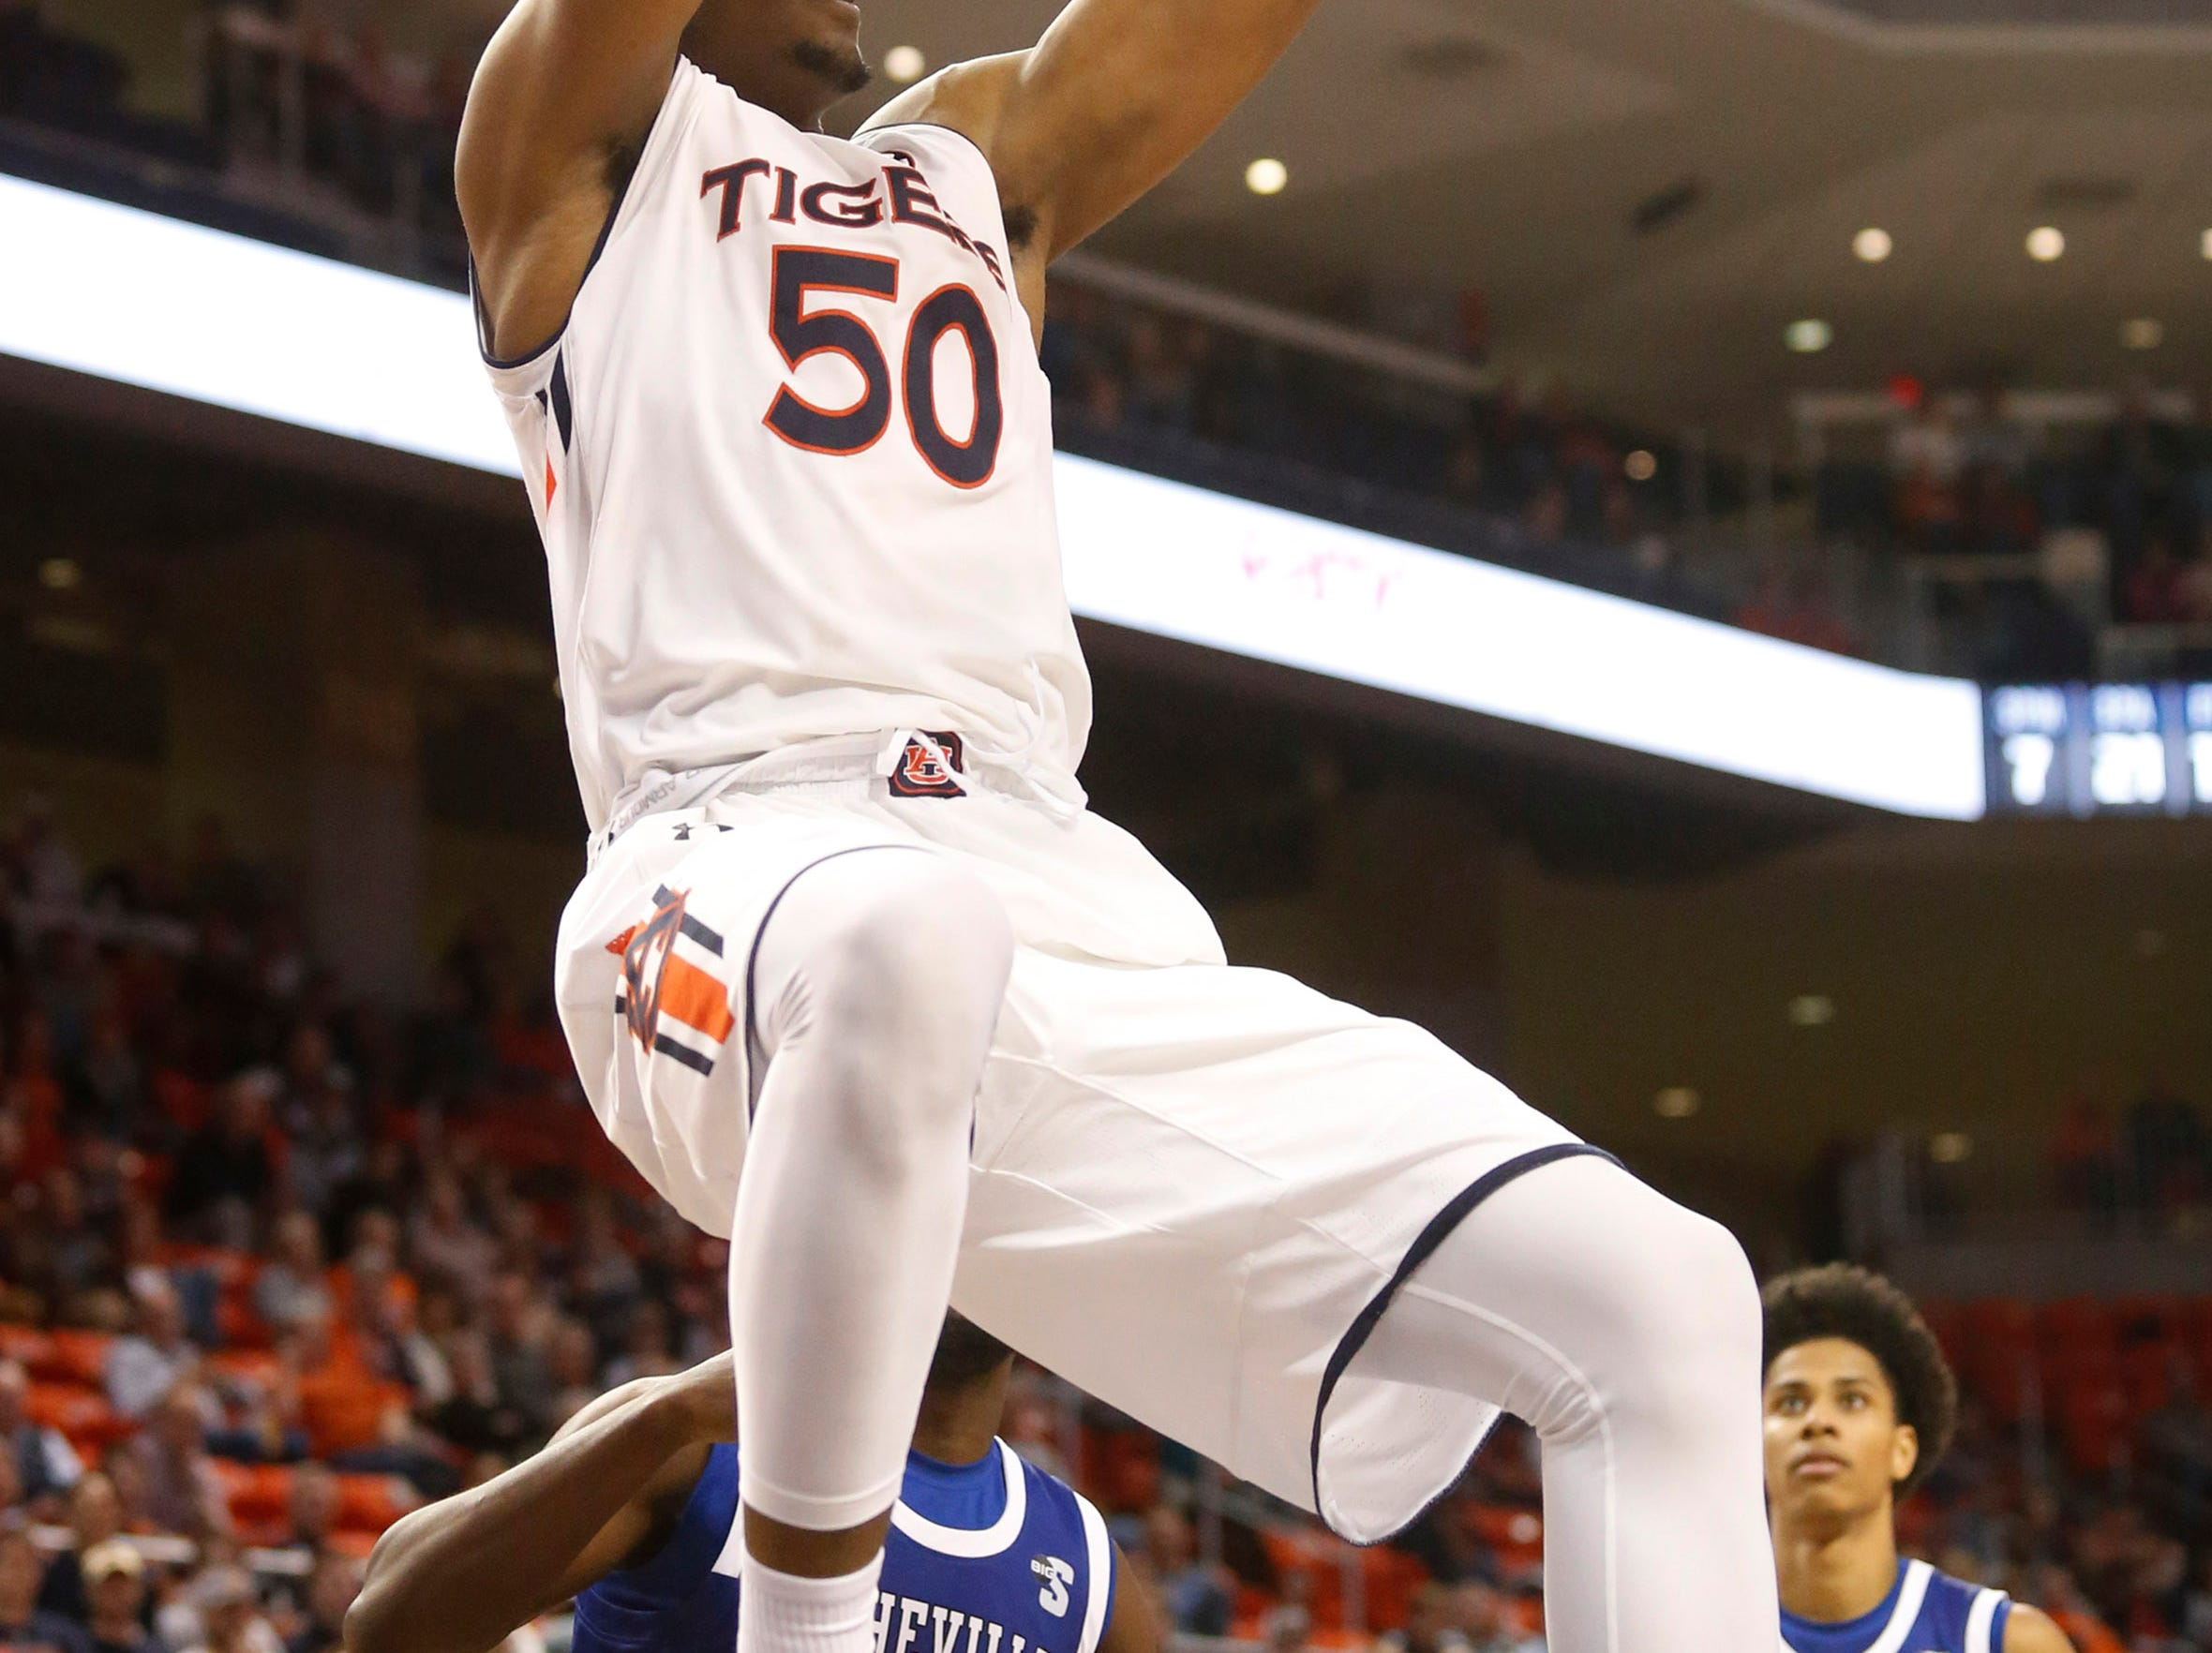 Dec 4, 2018; Auburn, AL, USA; Auburn Tigers center Austin Wiley (50) makes a dunk against the UNC-Asheville Bulldogs during the second half at Auburn Arena. Mandatory Credit: John Reed-USA TODAY Sports